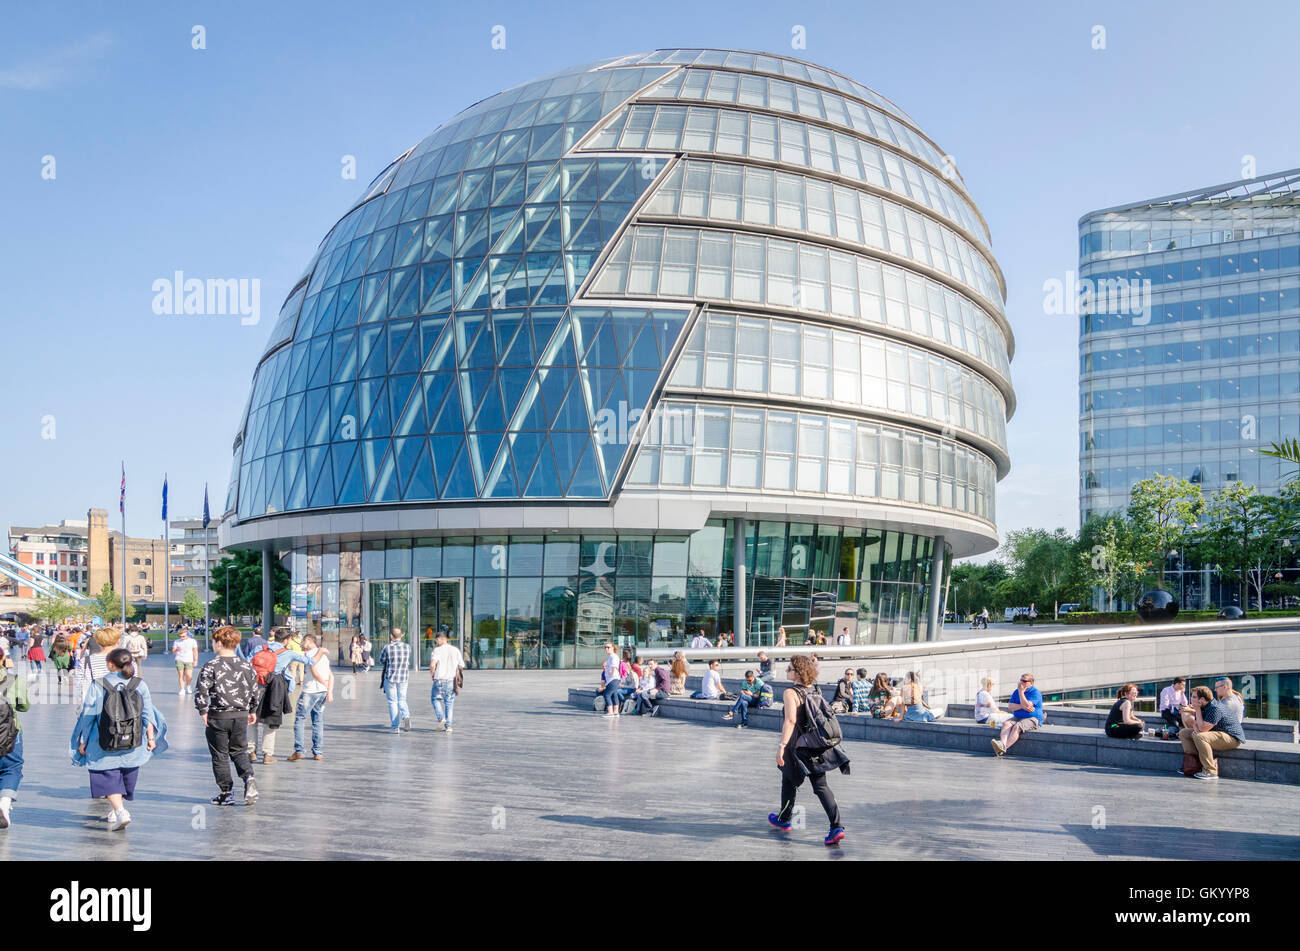 Gente fuera de City Hall, London, UK Imagen De Stock